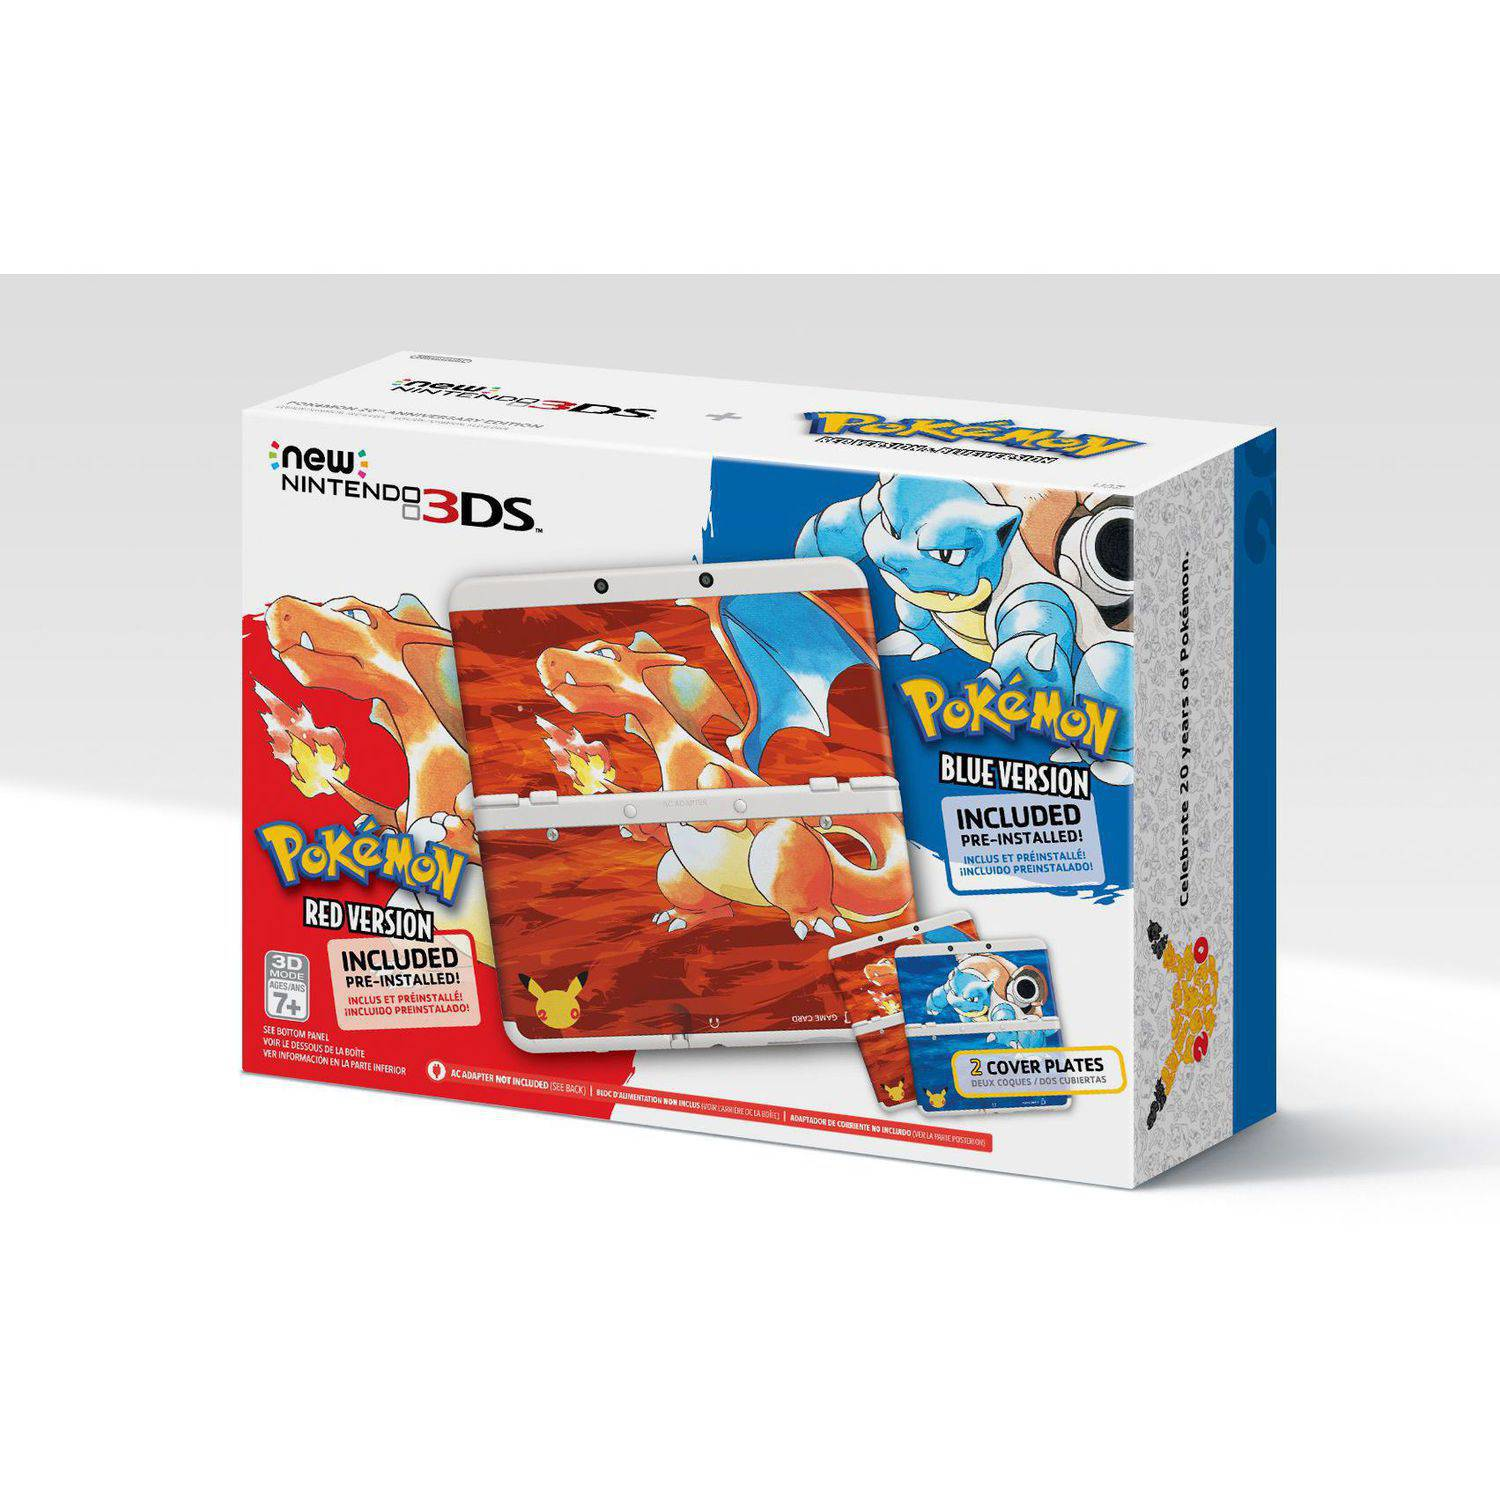 Nintendo Pokemon 20th Anniversary Edition New 3DS with Red/Blue Video Game